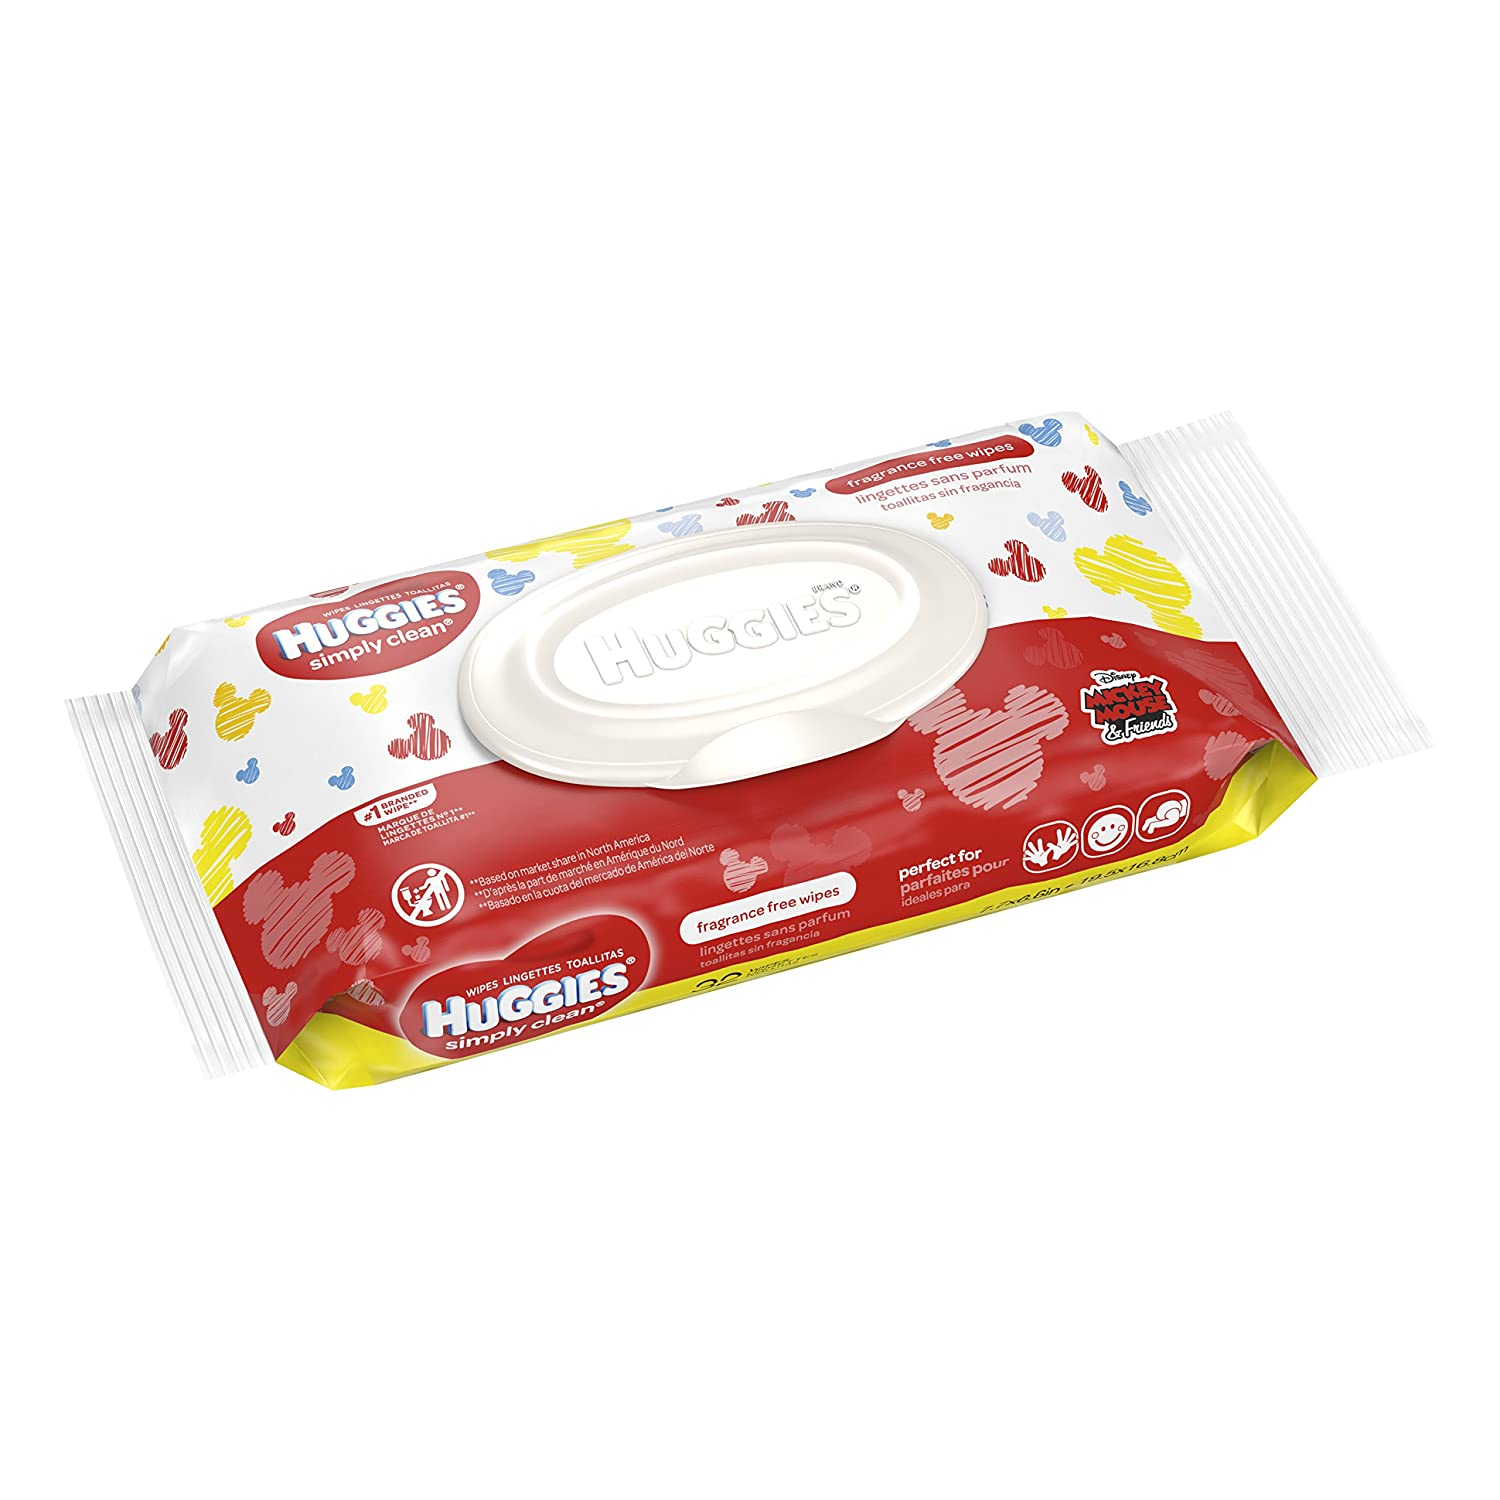 Amazon.com: (3) Huggies Simply Clean Fragrance Free 32ct Baby Wipes in Mickey Mouse Packaging: Health & Personal Care